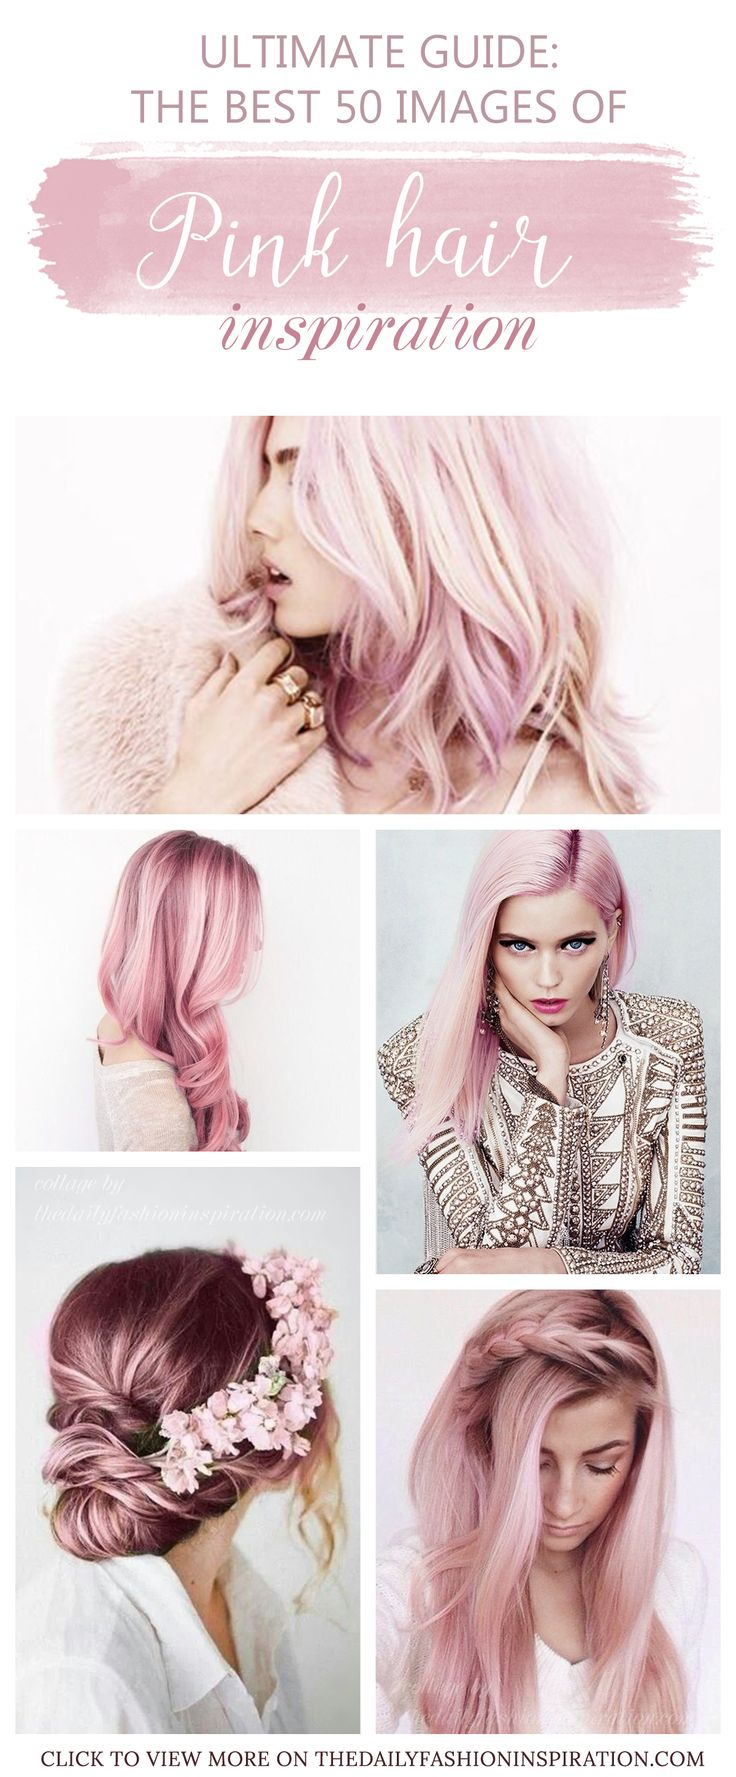 Pink hair ideas are combined in my blog post about the latest hair dye trends. I show you cool pink hair dye techniques, from ombre pink hair to pastel pink hair. I love these beautiful tones and encourage you to see my article and relax with beautiful photographs. If might even help you try this trend too or buy a wig, just to see how it is. There you will find the best selection of pink hairstyles.